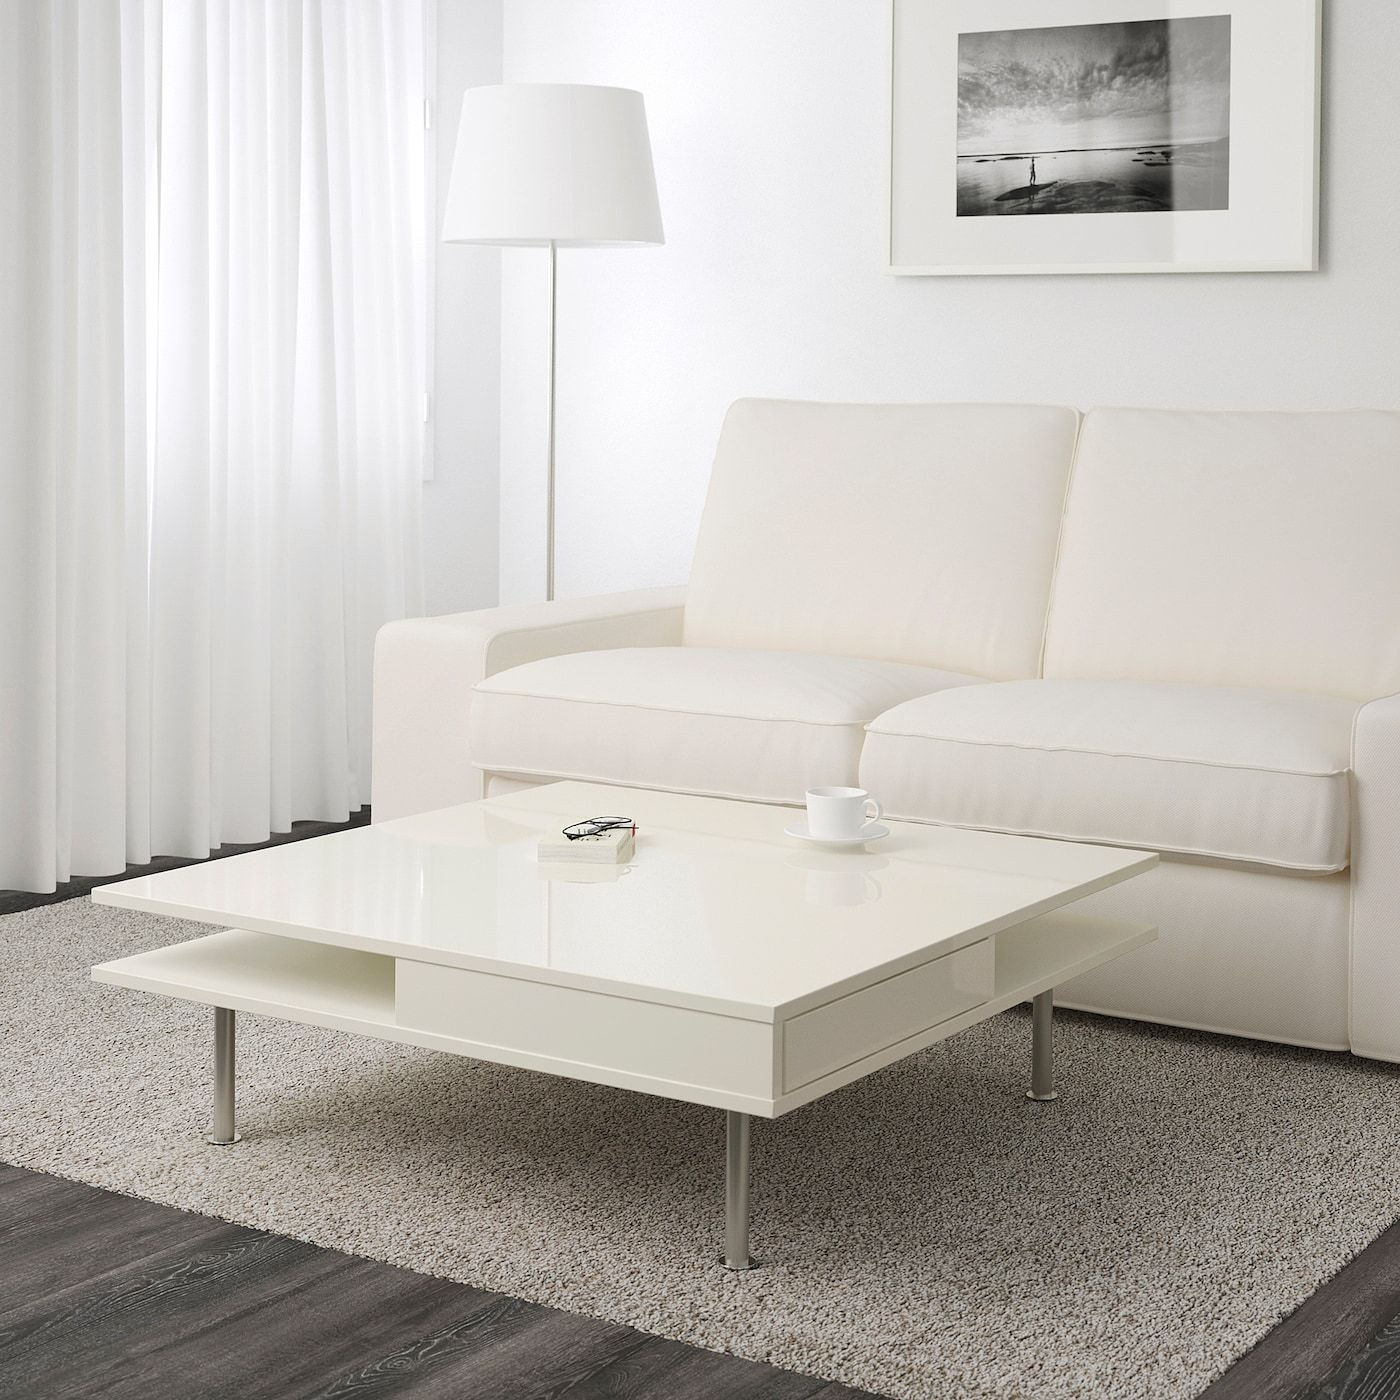 Ikea Couchtisch Weiß Hochglanz Tofteryd Couchtisch, Hochglanz Weiß, 95x95 Cm - Ikea Deutschland | White Living Room Tables, White Coffee Table Living Room, Coffee Table